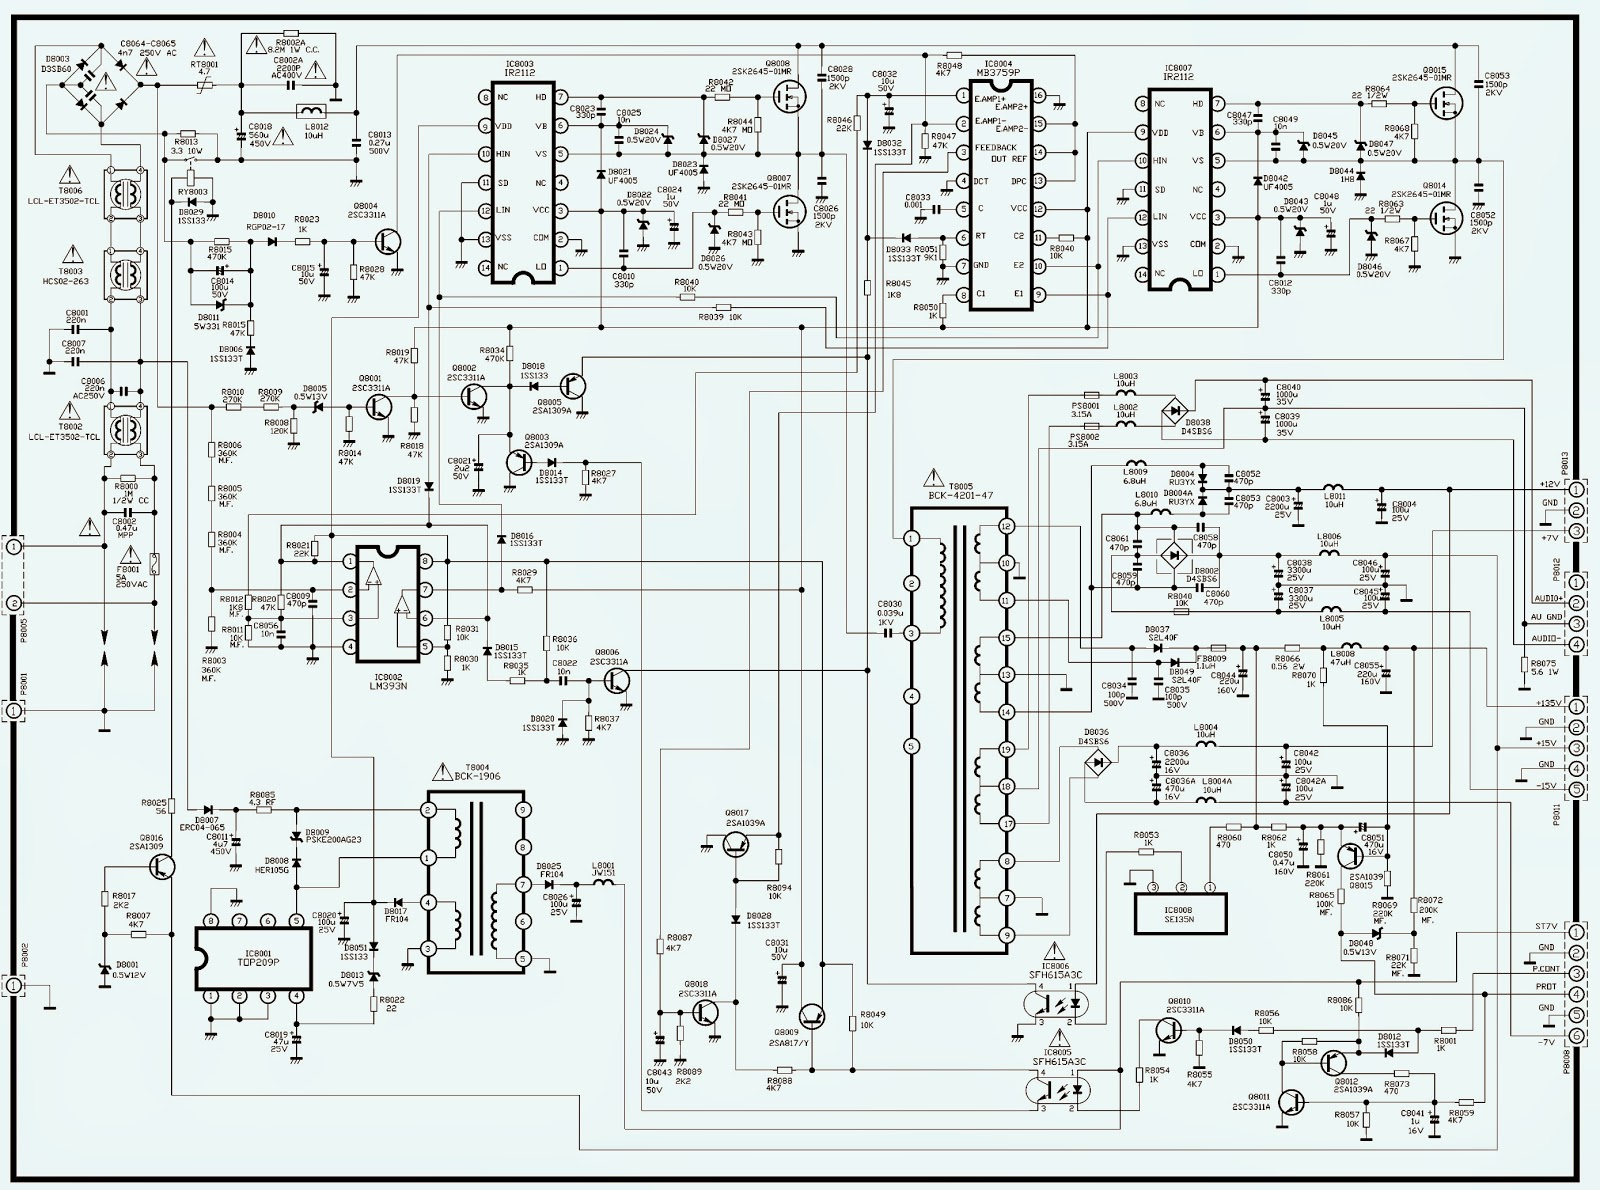 re 40 7303 a wiring diagram   27 wiring diagram images